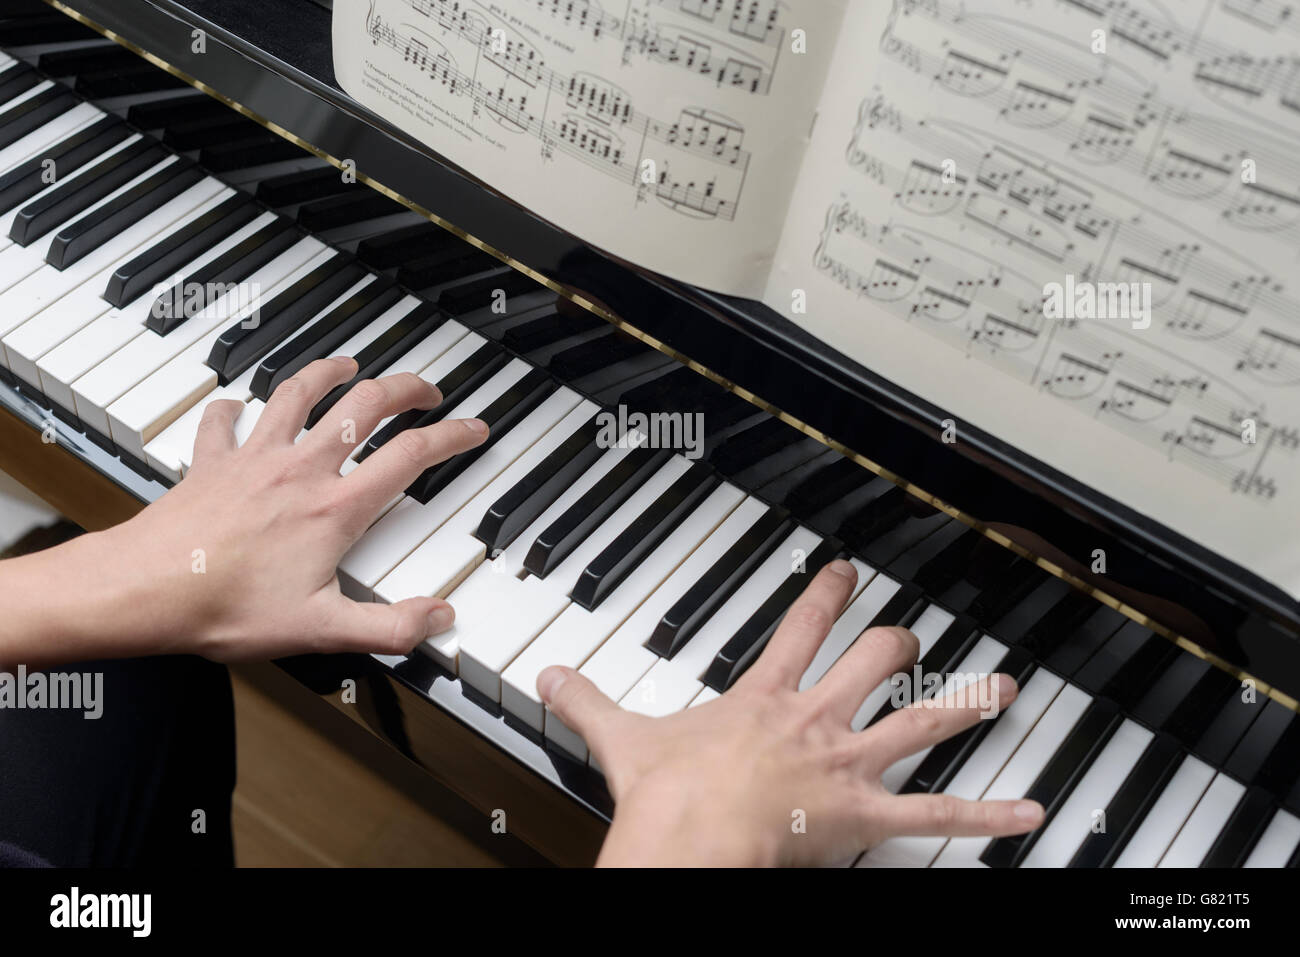 Woman playing the piano - Stock Image